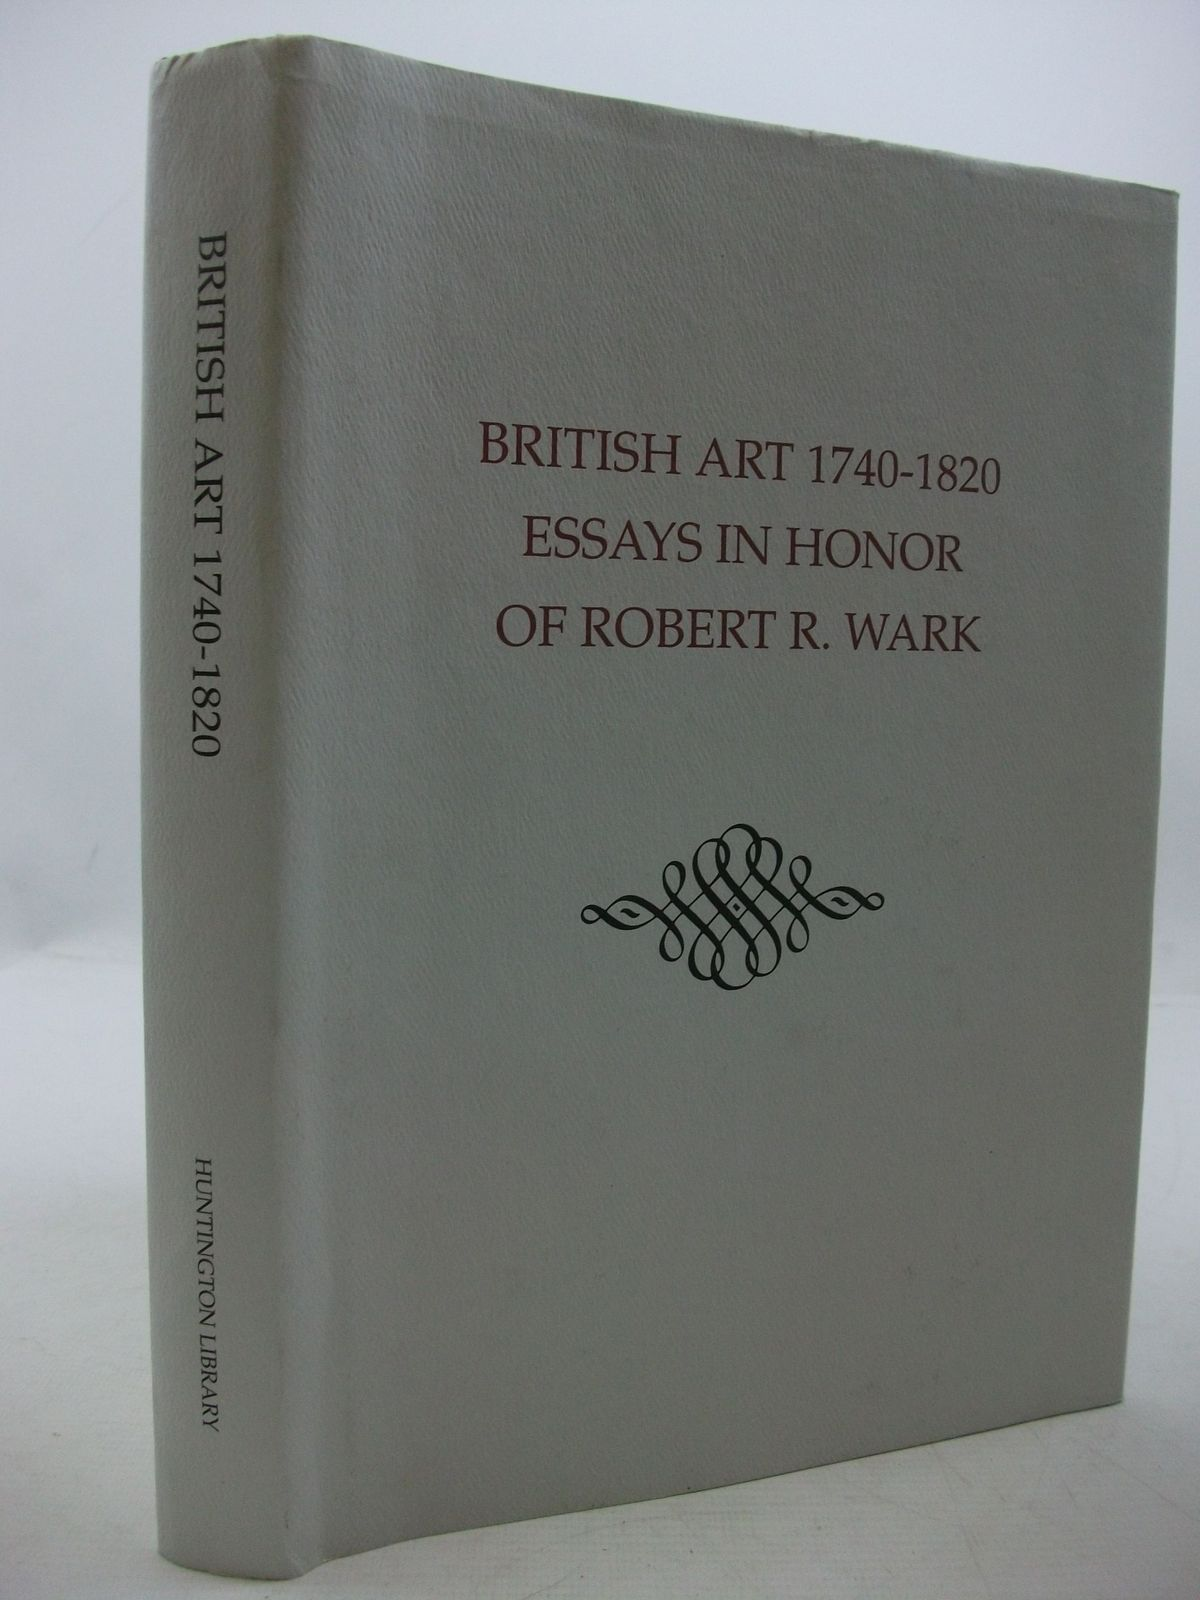 Photo of BRITISH ART 1740-1820 ESSAYS IN HONOR OF ROBERT T. WARK written by Sutherland, Guilland published by The Huntington Library (STOCK CODE: 2111385)  for sale by Stella & Rose's Books